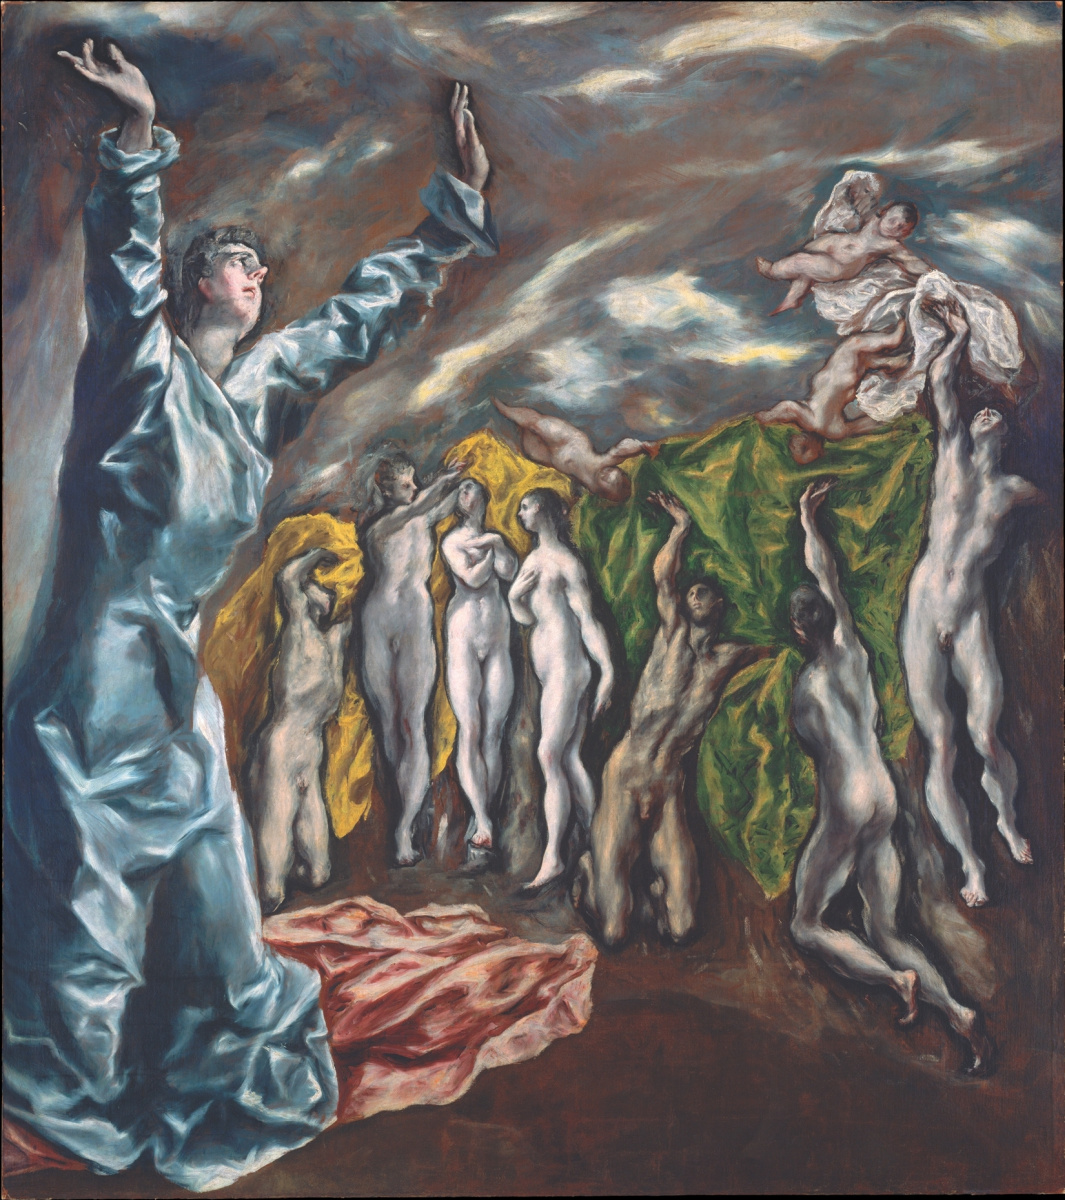 Domenico Theotokopoulos (El Greco). The opening of the fifth seal (the vision of Saint John the theologian)